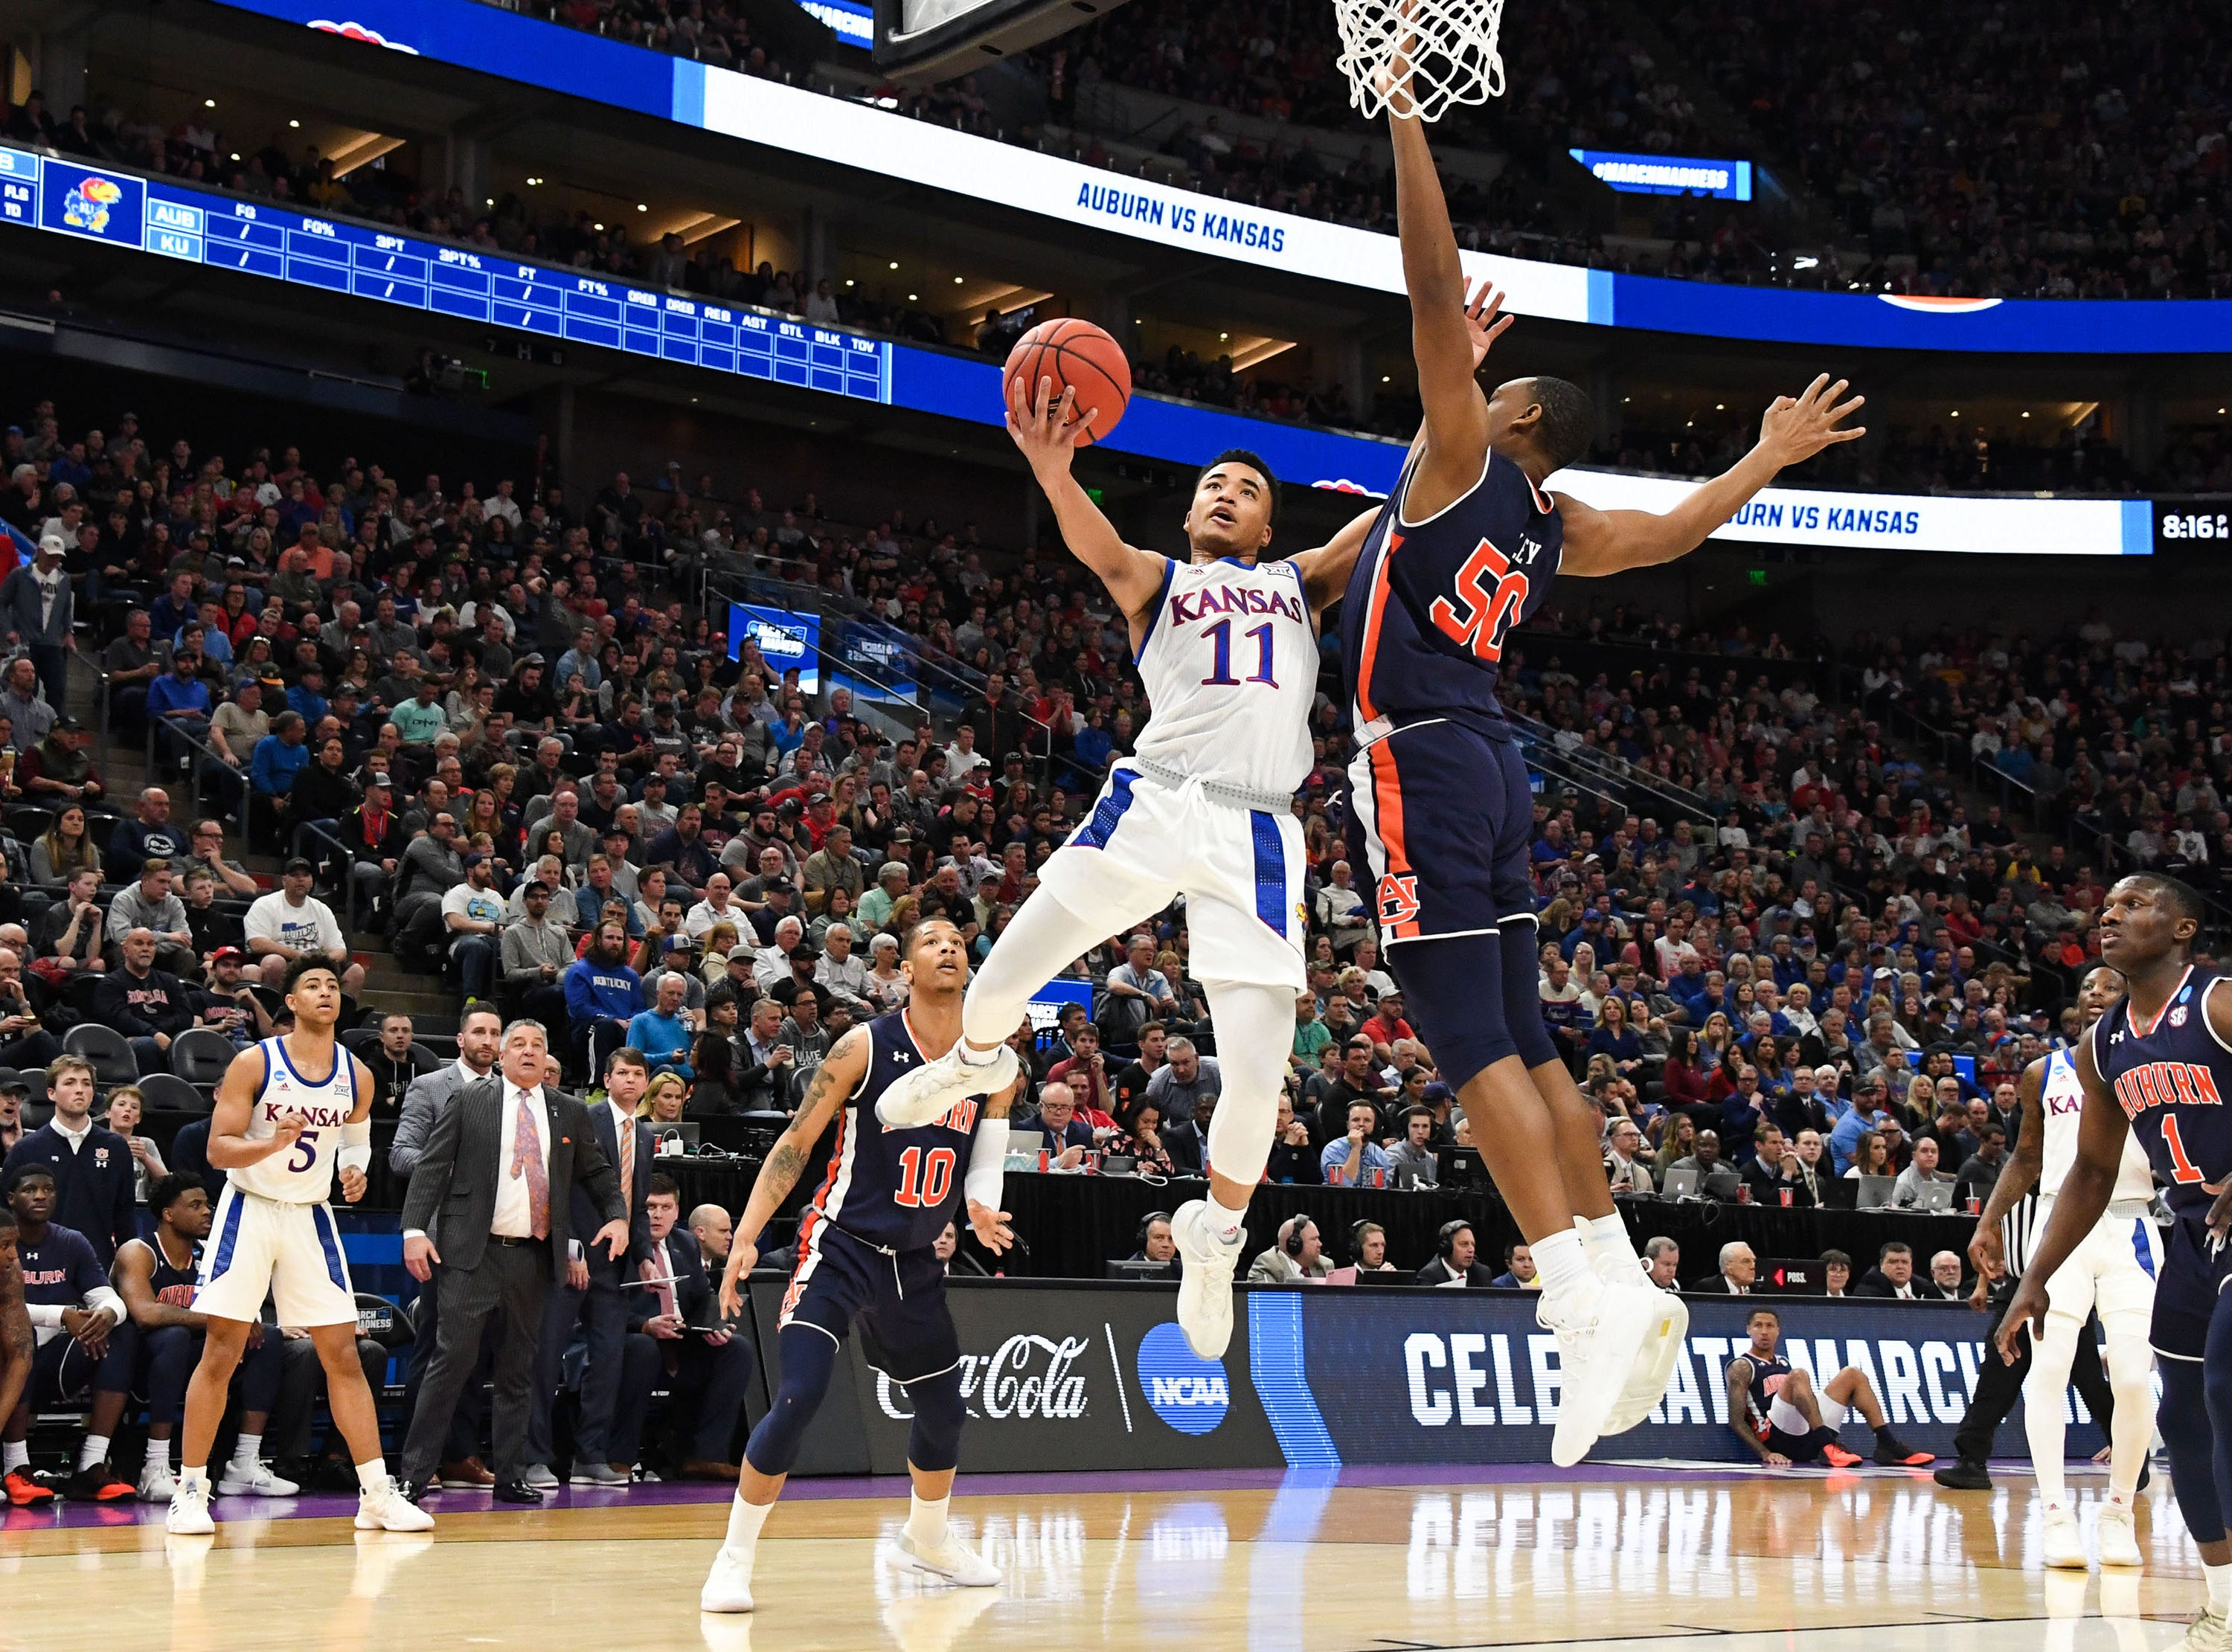 Mar 23, 2019; Salt Lake City, UT, USA; Kansas Jayhawks guard Devon Dotson (11) goes up for a shot as Auburn Tigers center Austin Wiley (50) defends during the first half in the second round of the 2019 NCAA Tournament at Vivint Smart Home Arena. Mandatory Credit: Kirby Lee-USA TODAY Sports